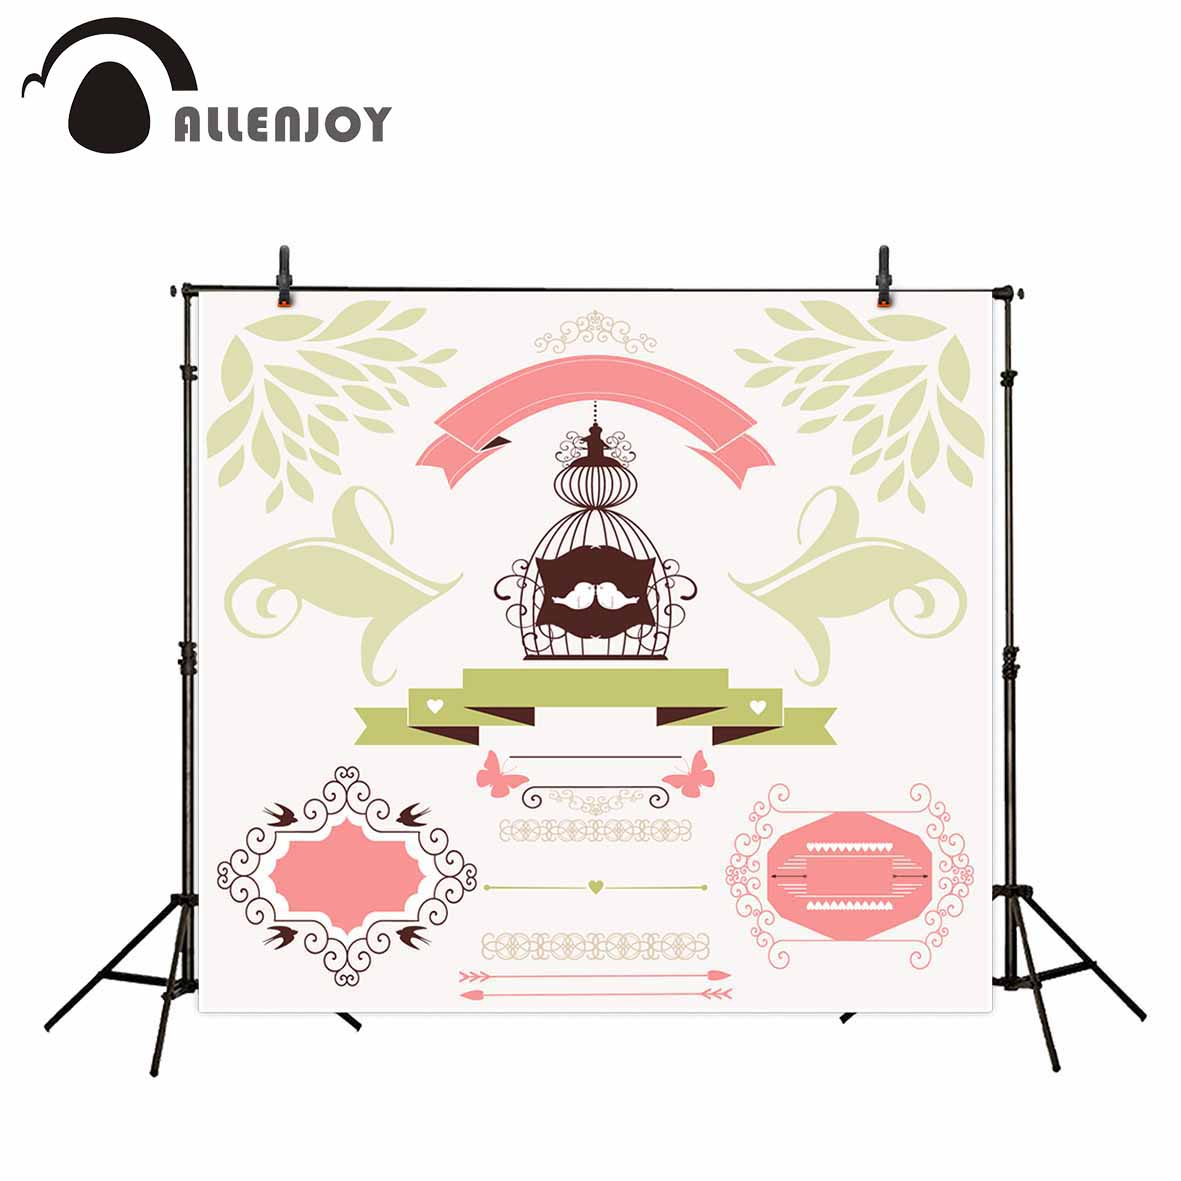 Allenjoy photographic background Banner Cartoon Customize Love Wedding backdrop photocall professional customize studio props